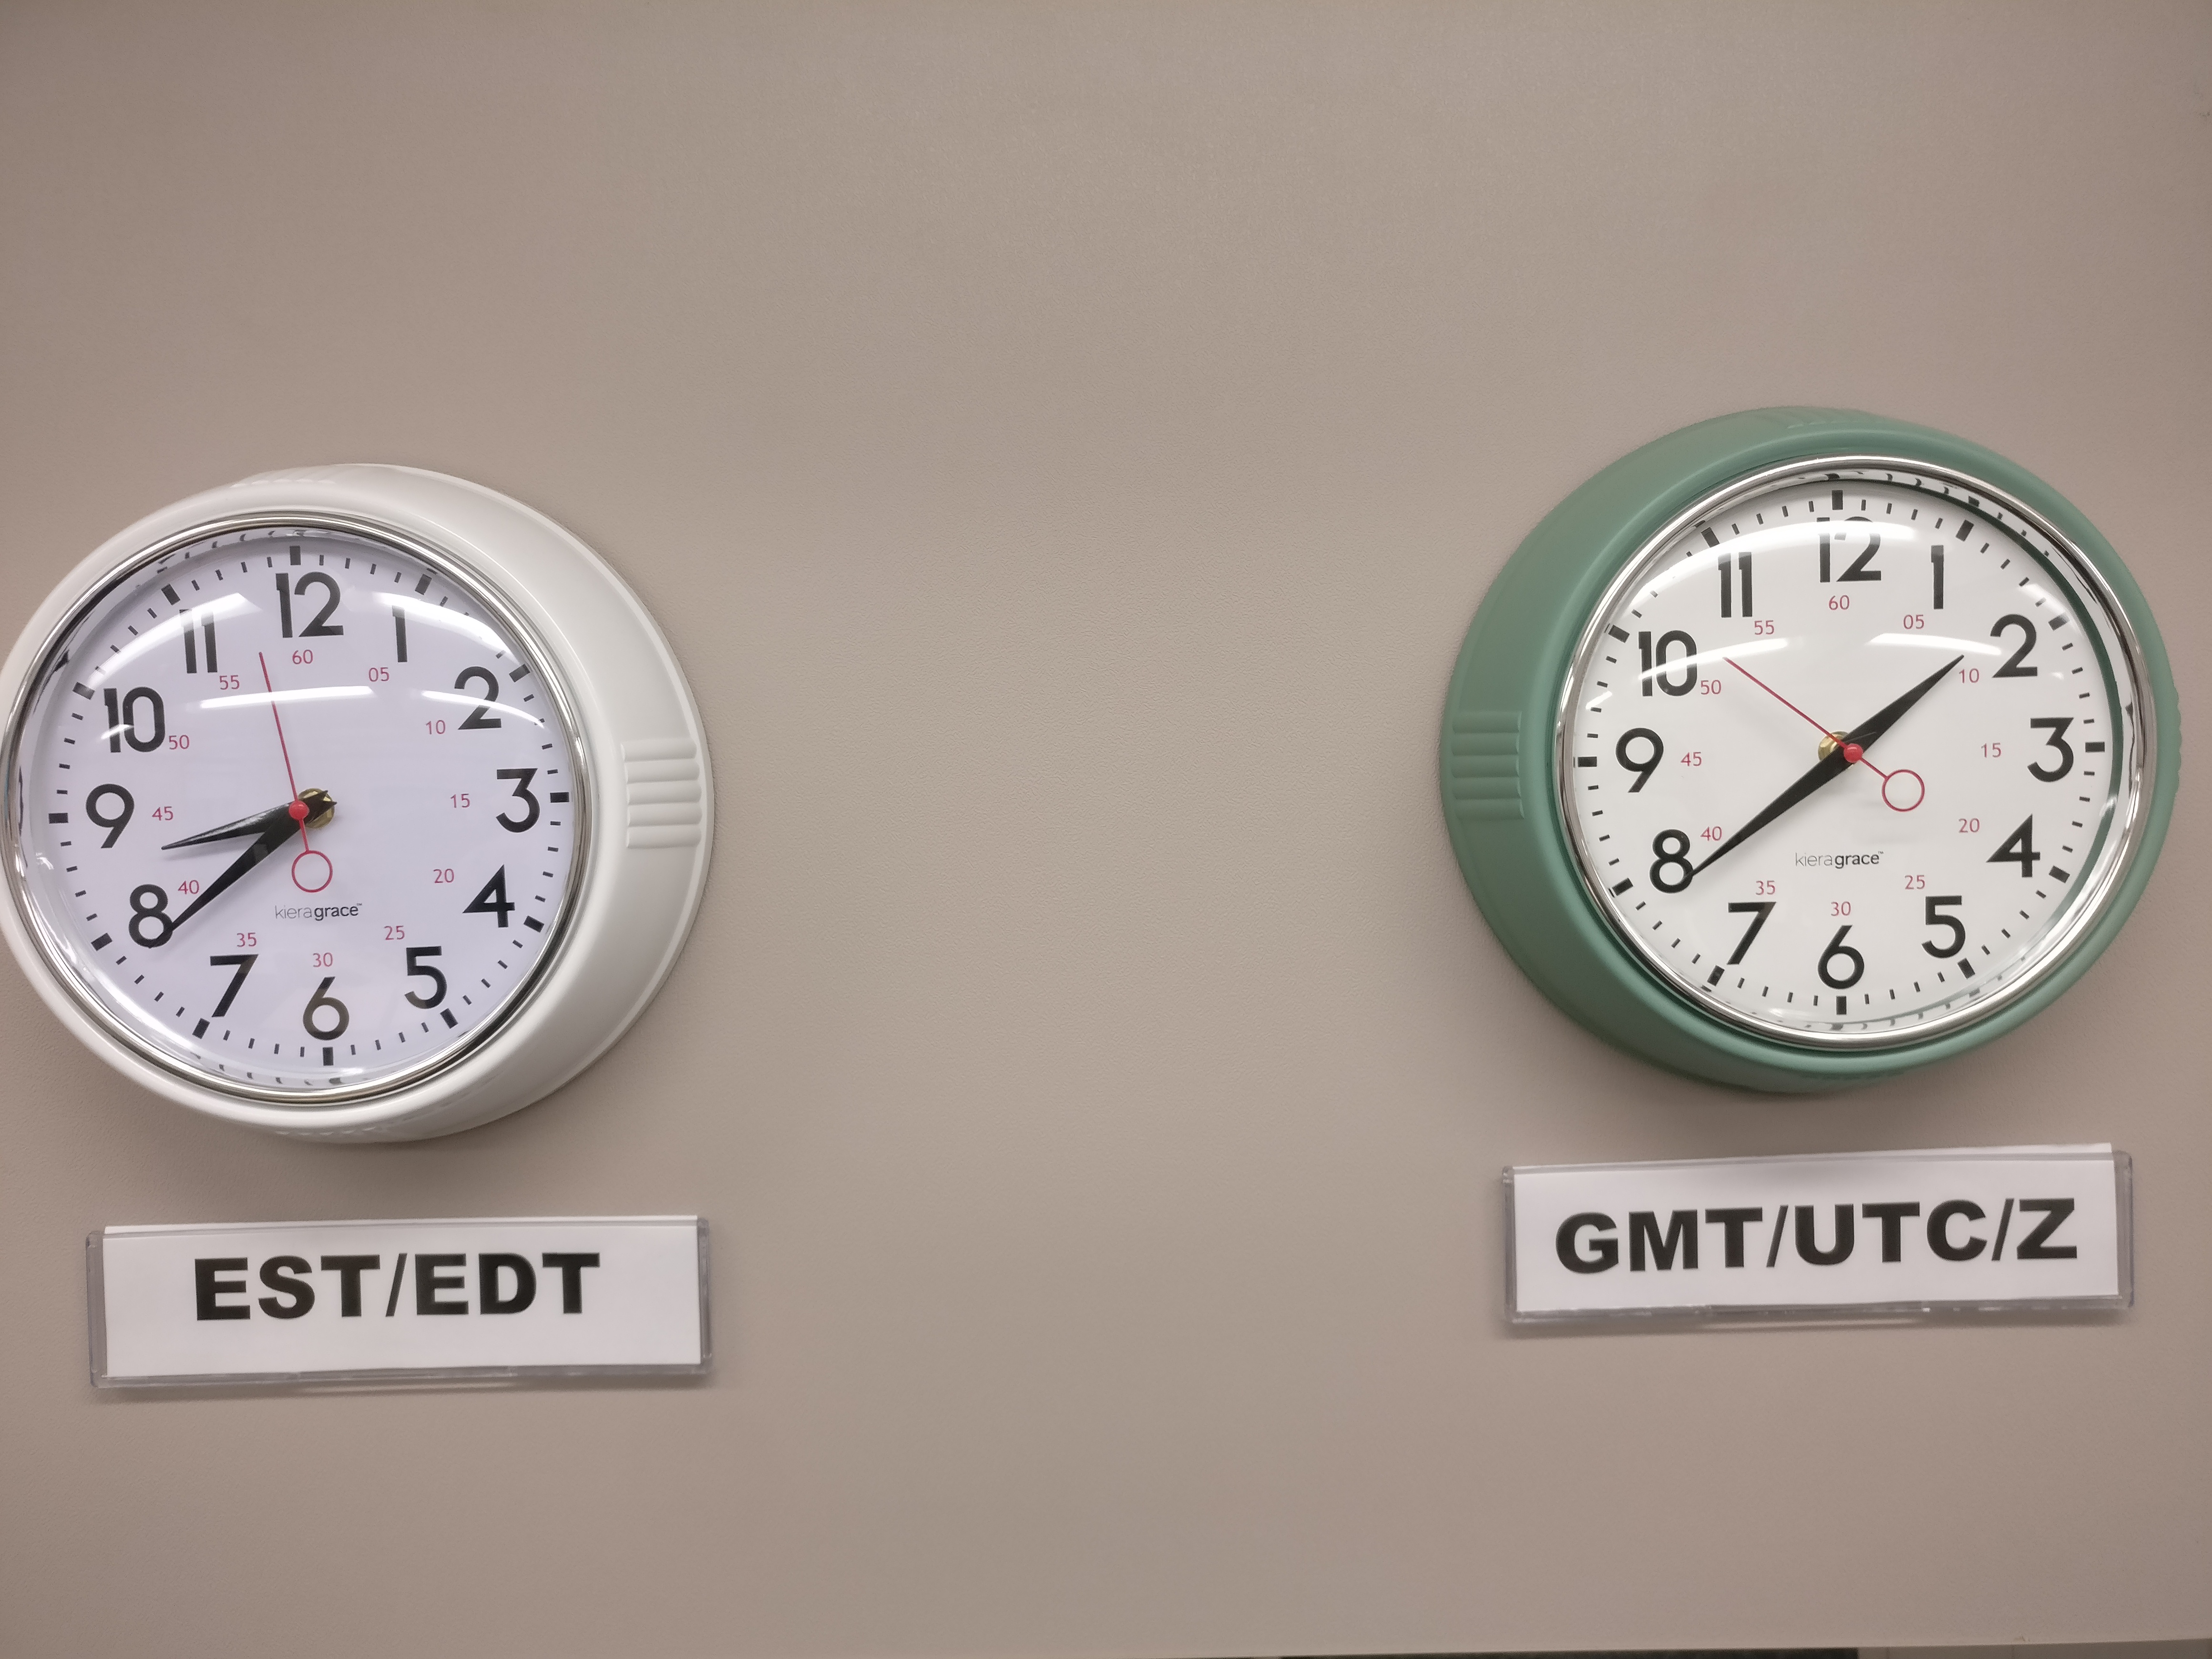 SOC Wall Clocks in EST/EDT and GMT/UTC/Z timezone.